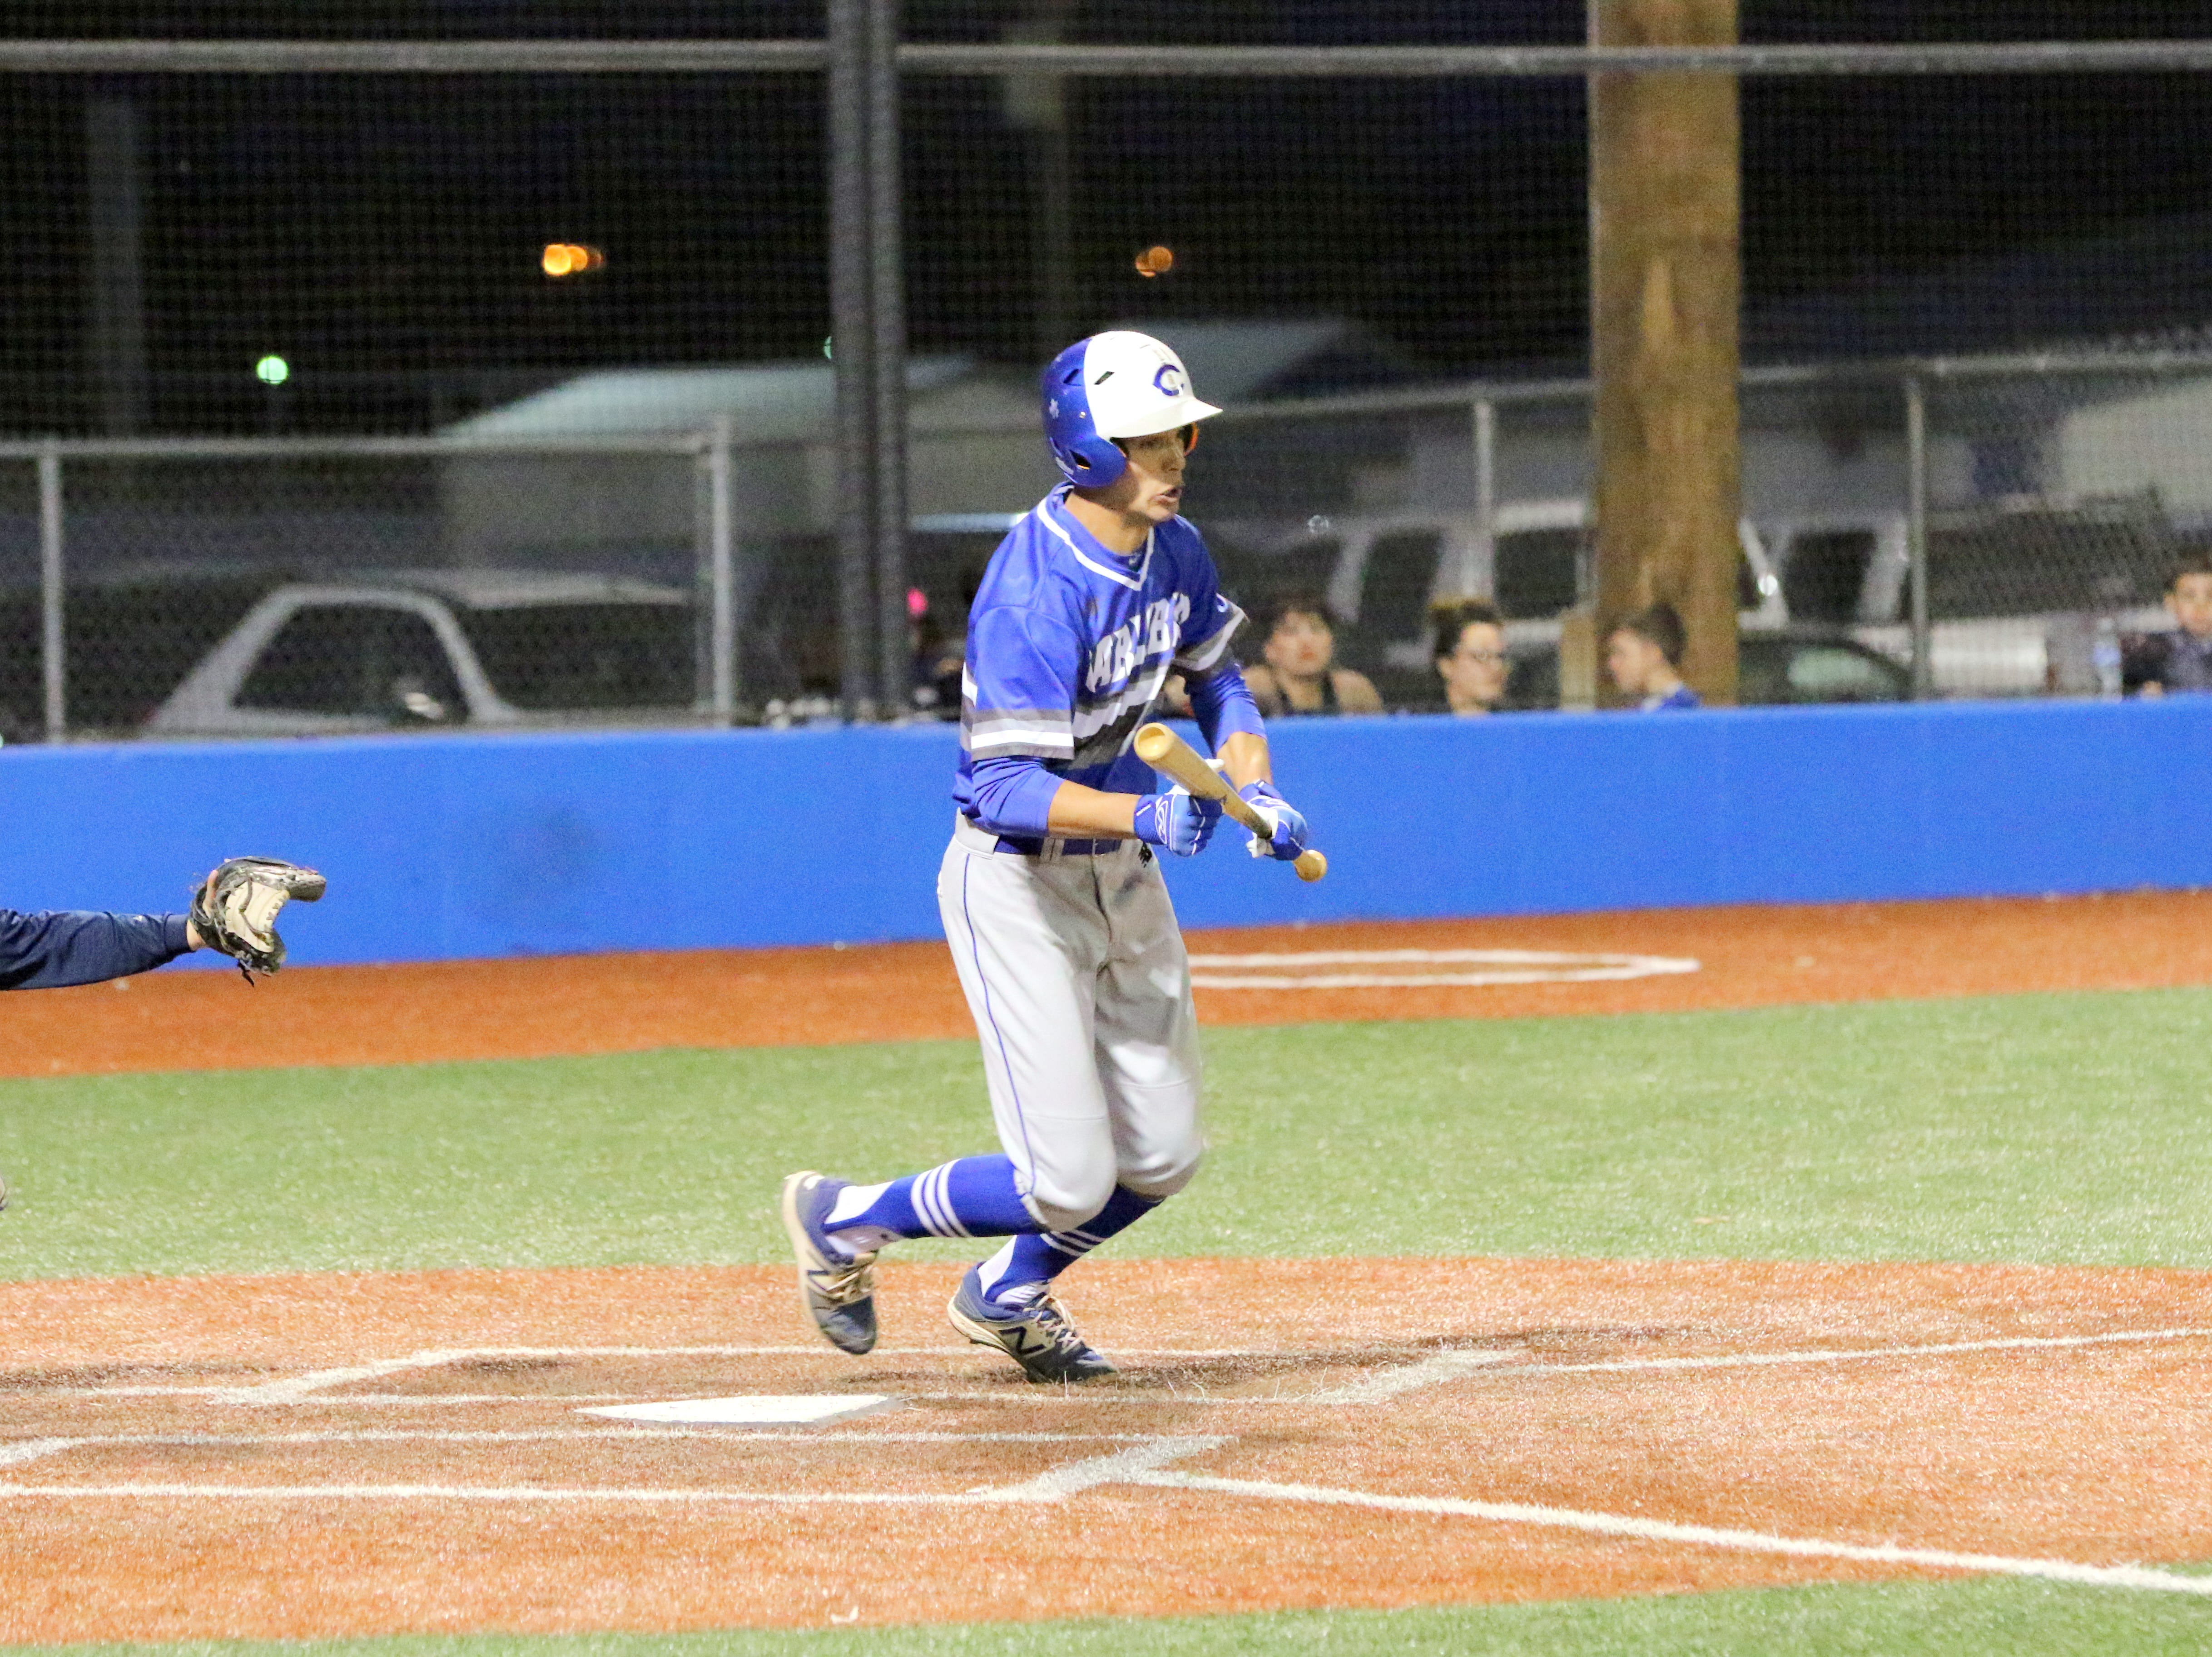 Will Garza looks at a pitch before dropping a bunt against Ruidoso on Friday.